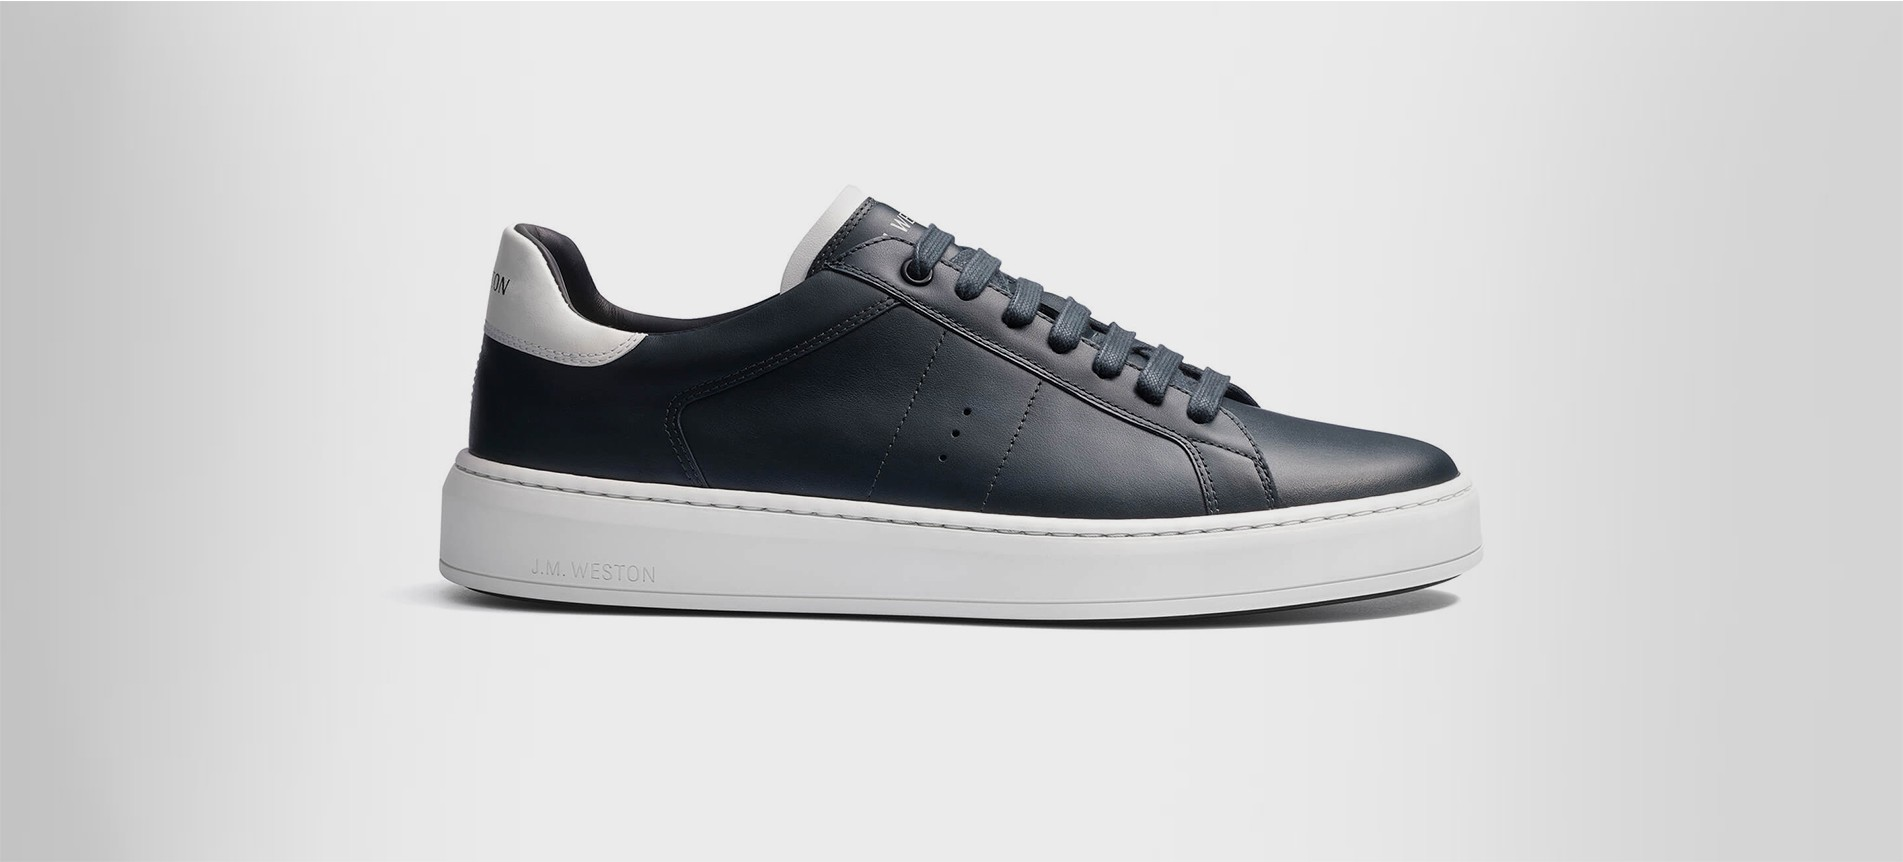 Sneaker On Time Grey Soft Calfskin With White Details Sneakers J M Weston